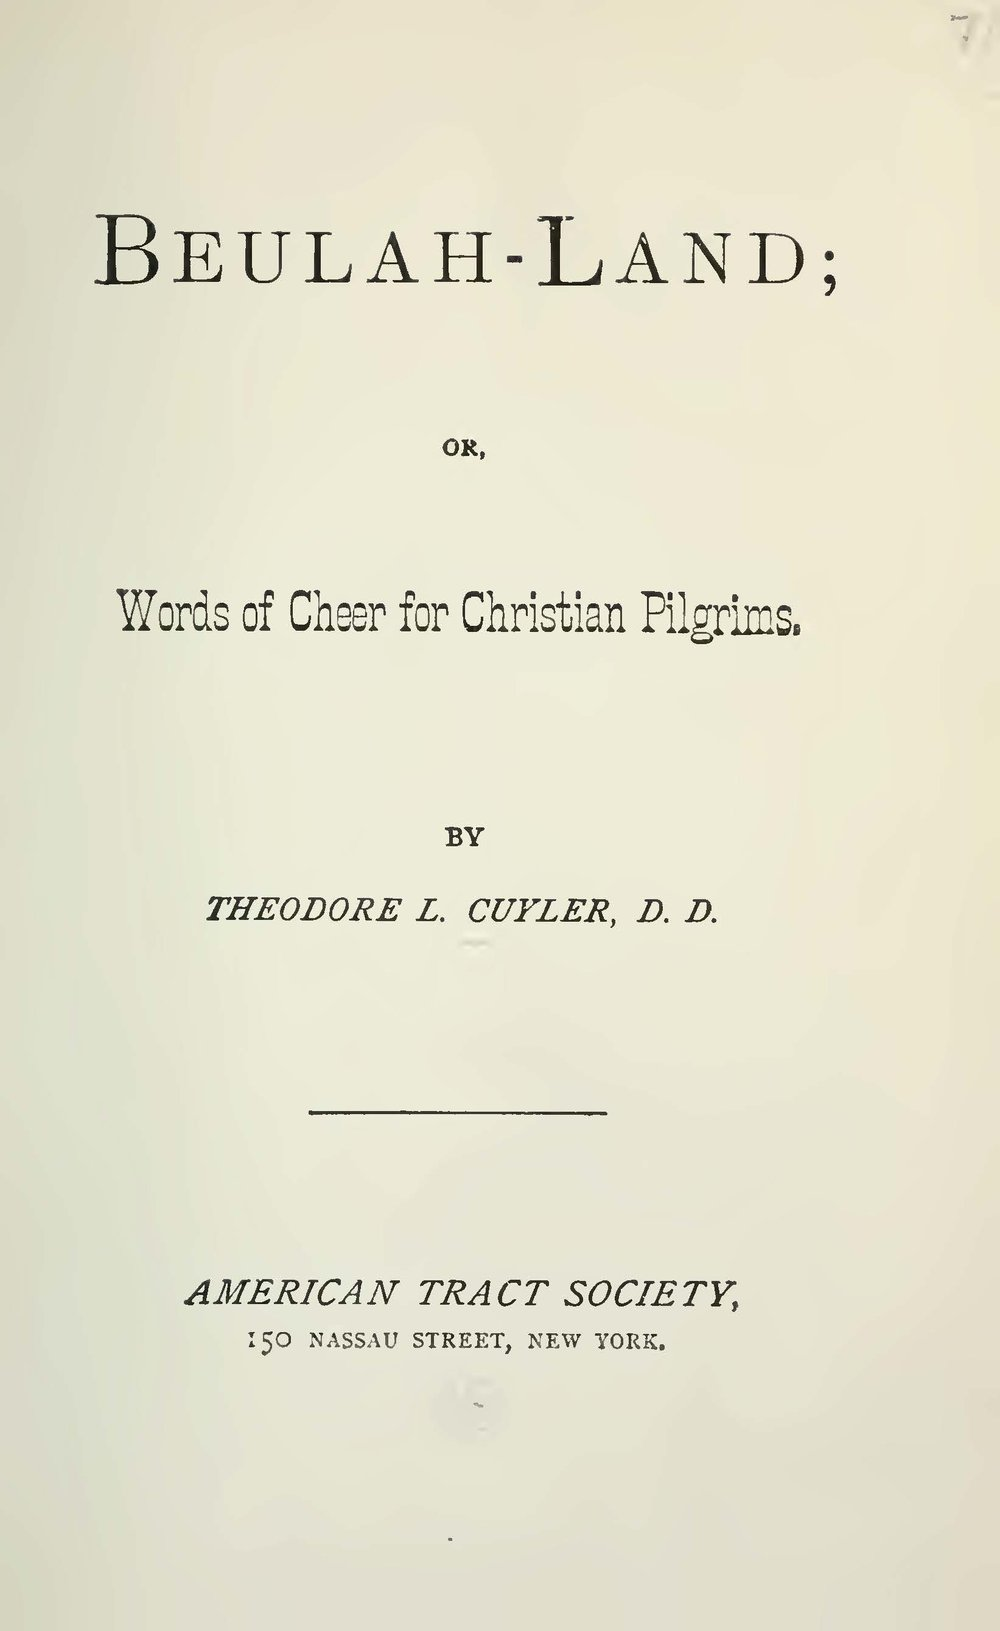 Cuyler, Theodore Ledyard, Beulah-Land Title Page.jpg